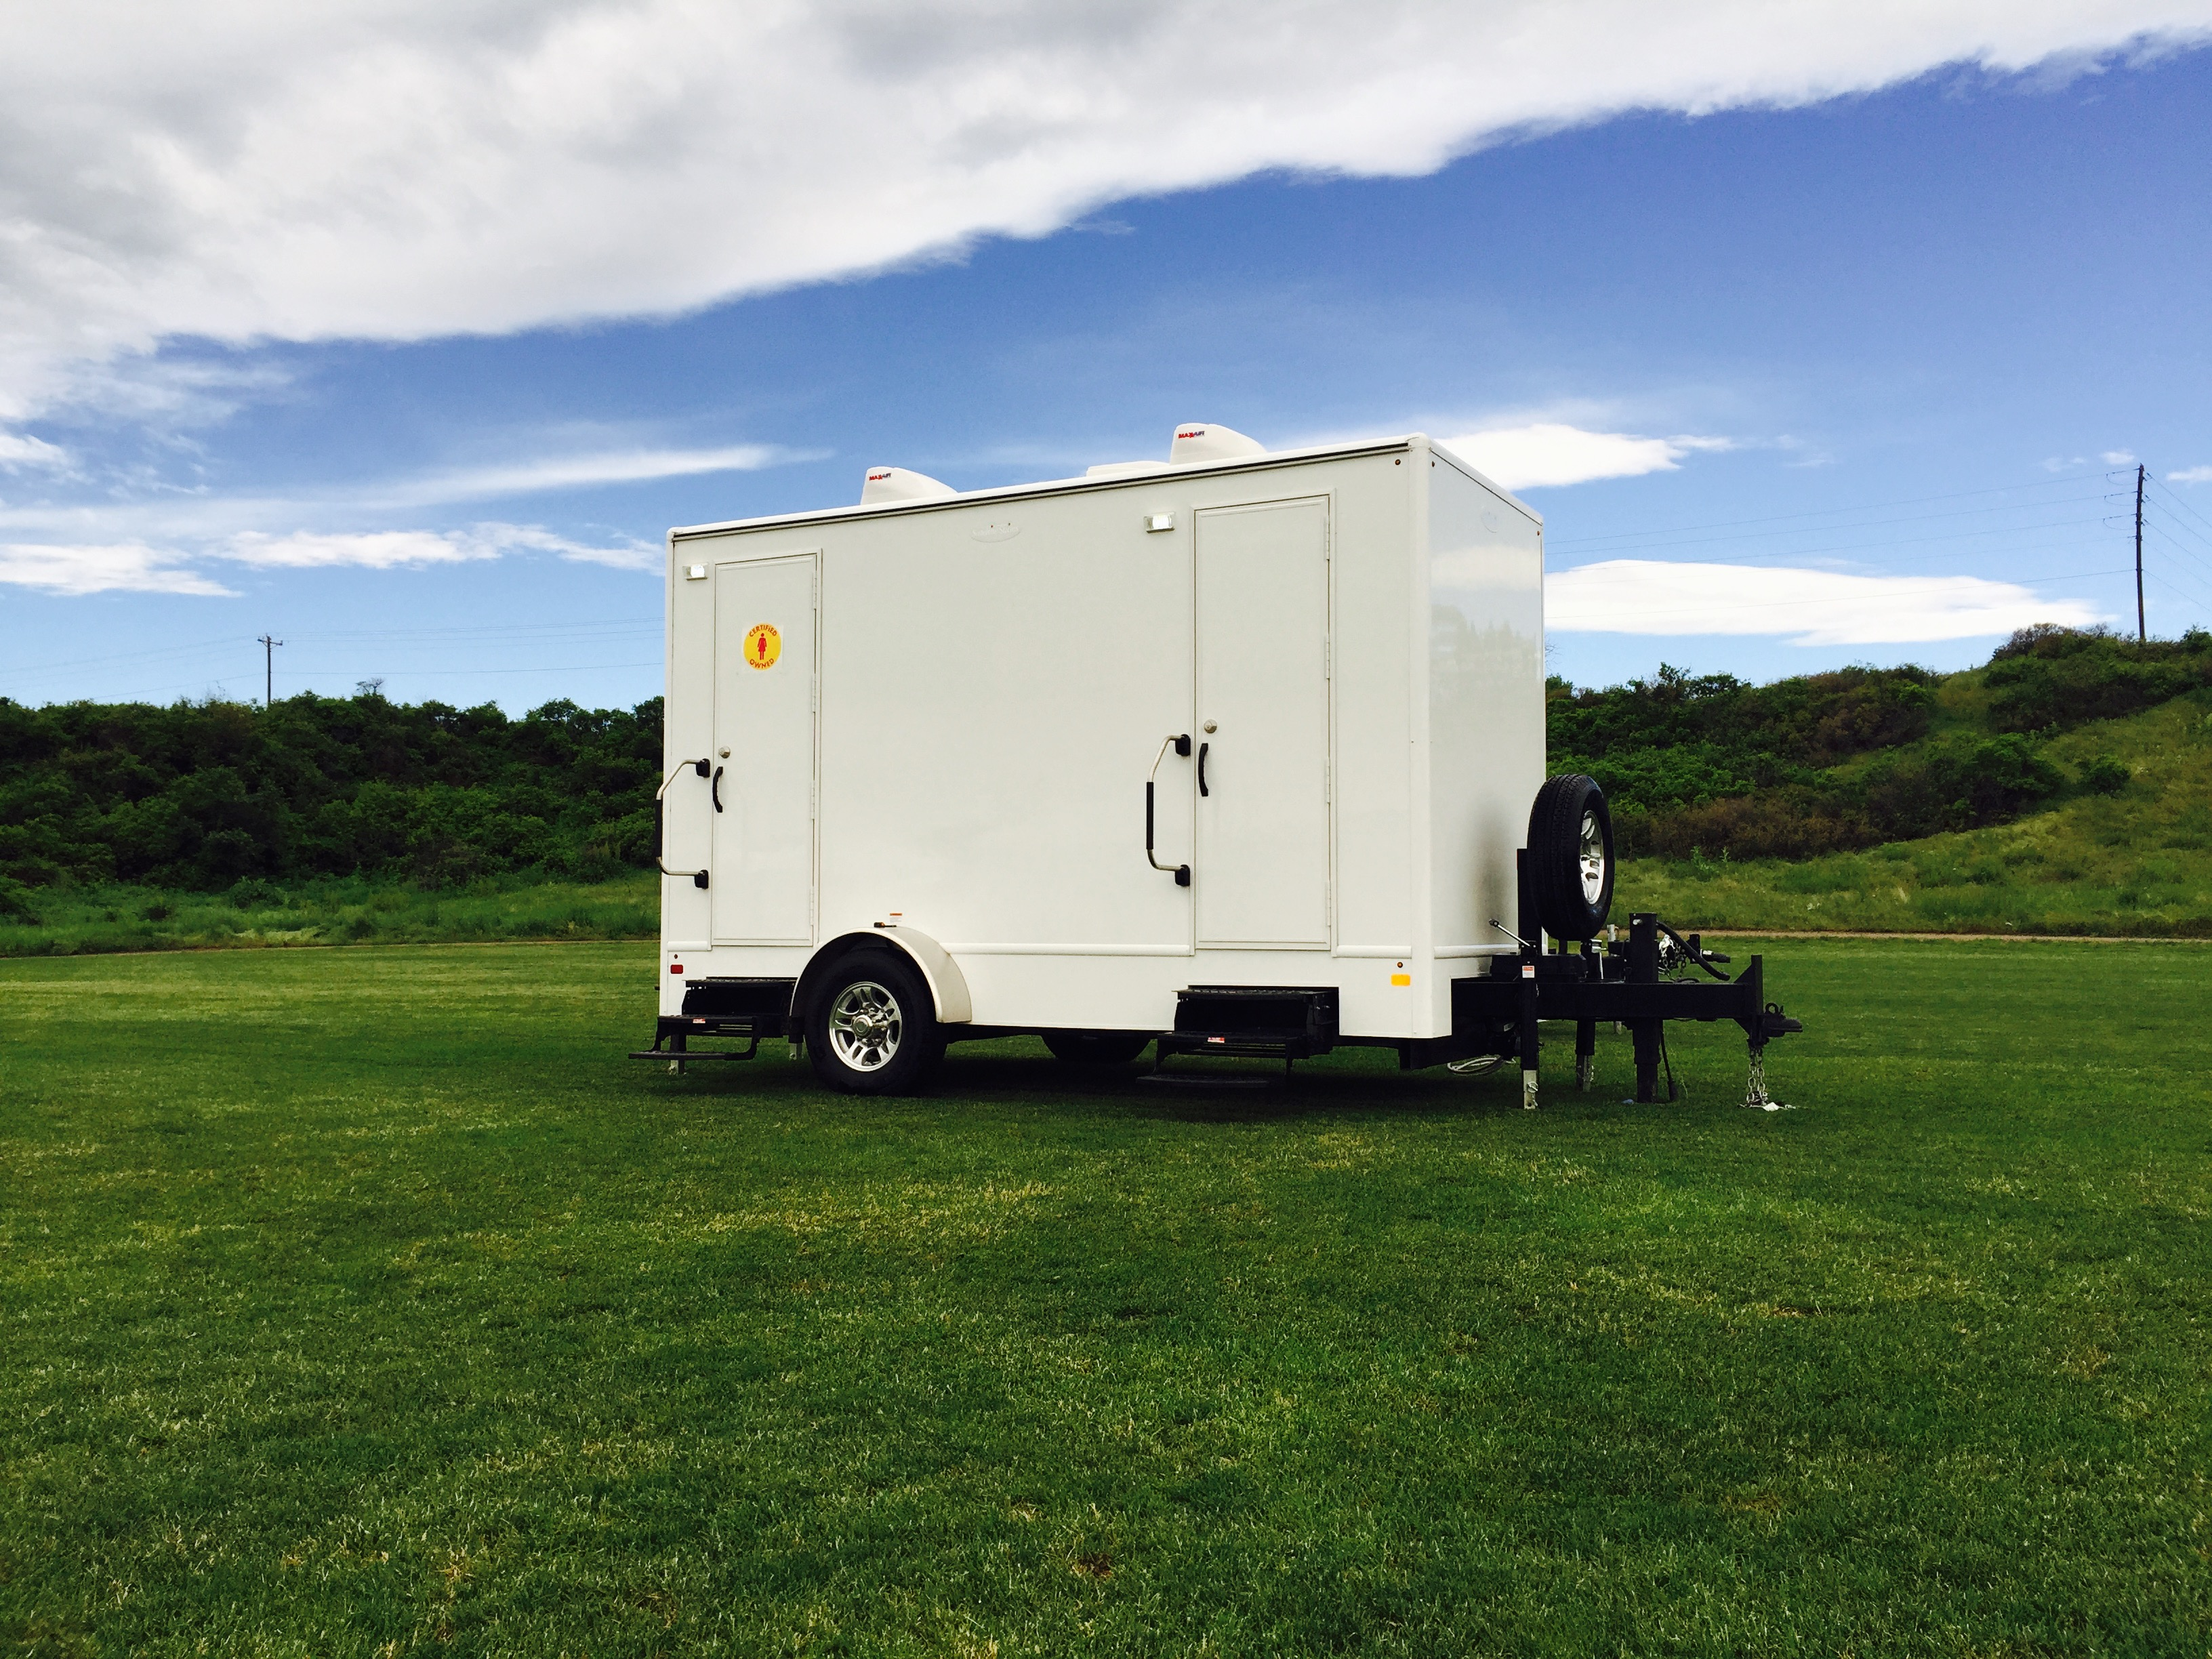 a wedding and wide trailer trailers restroom portable luxury bathroom services events exterior vip event on special rocket location